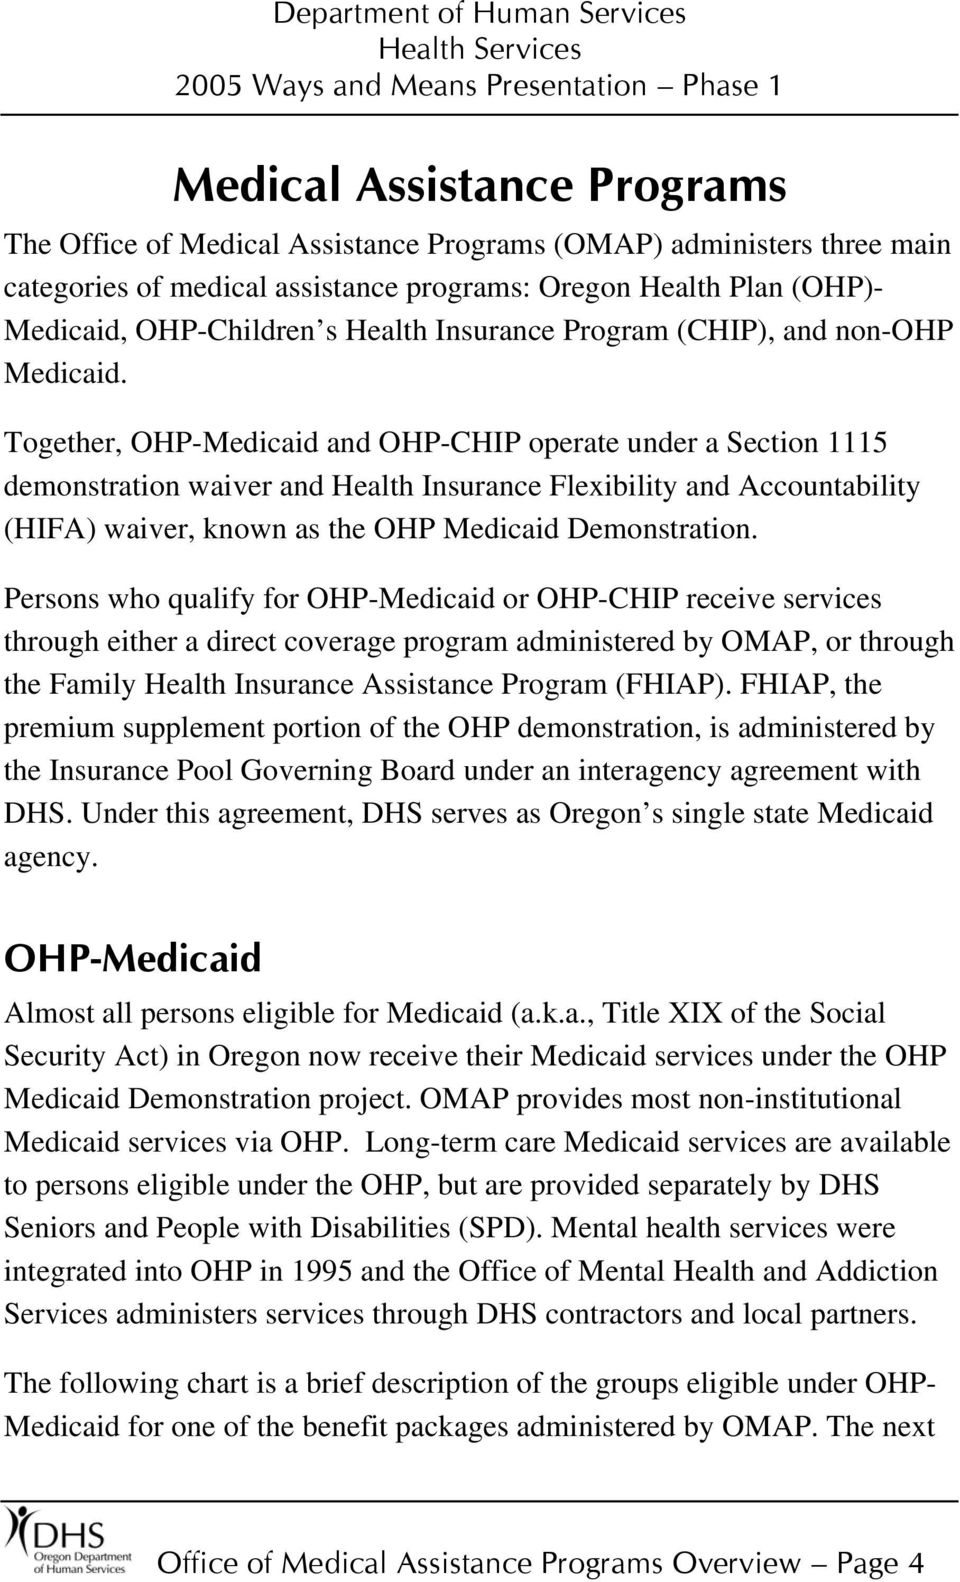 Together, OHP-Medicaid and OHP-CHIP operate under a Section 1115 demonstration waiver and Health Insurance Flexibility and Accountability (HIFA) waiver, known as the OHP Medicaid Demonstration.